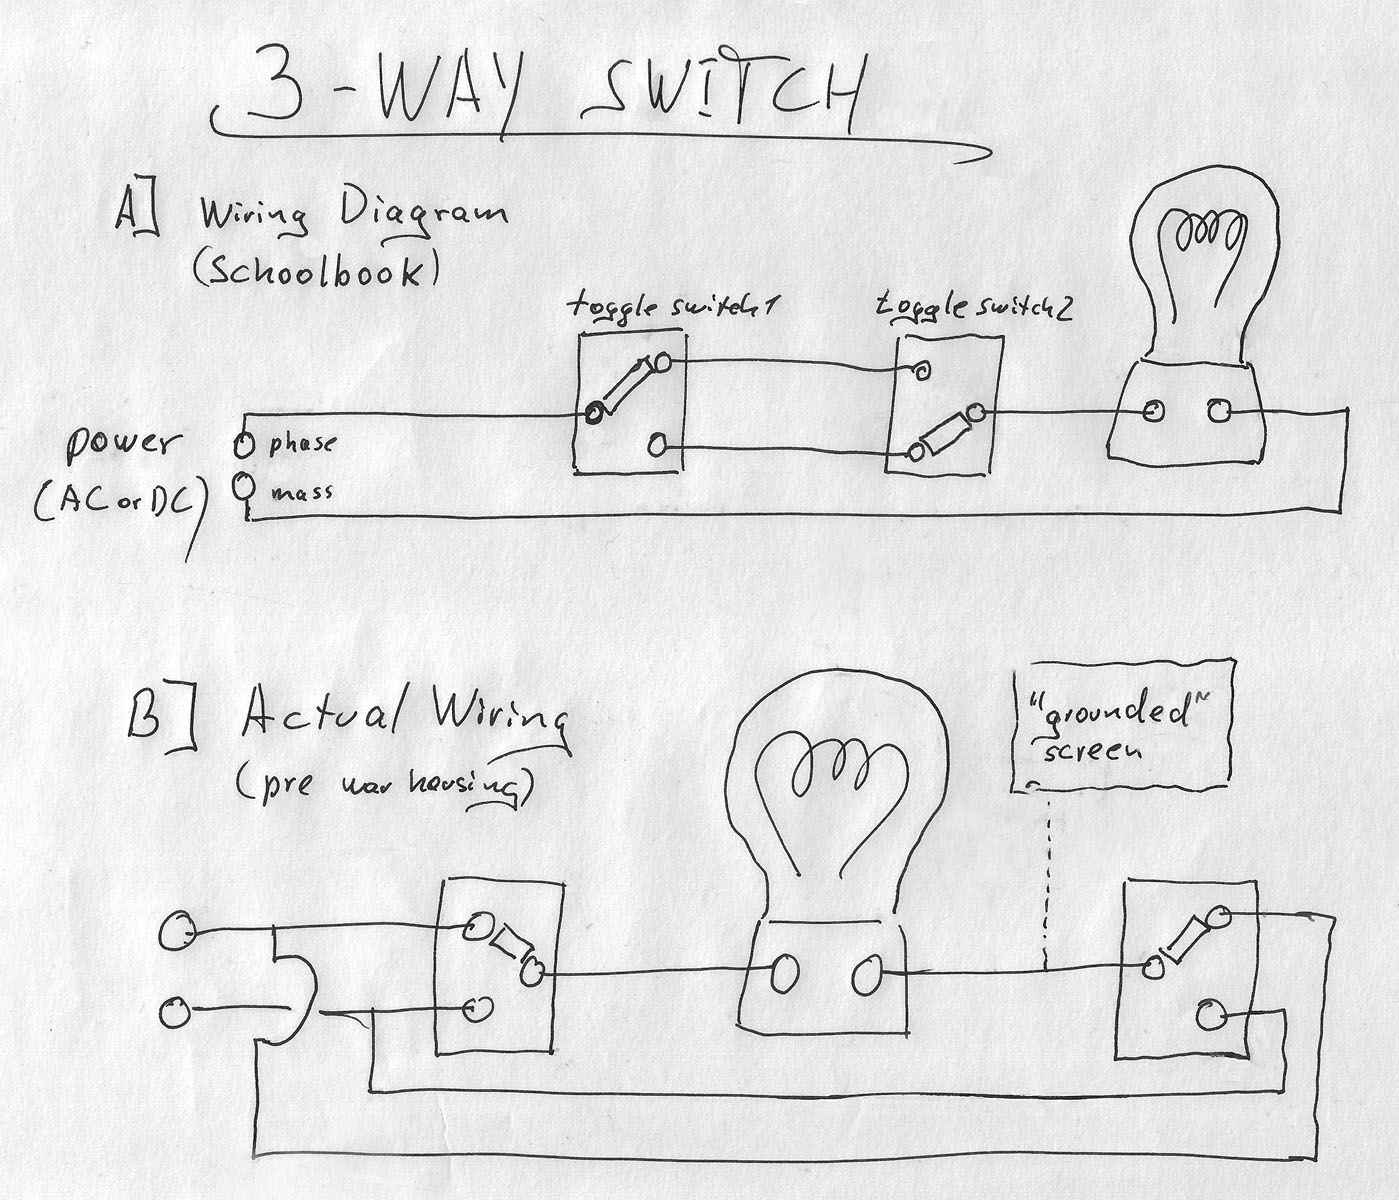 3 Way Switch Wiring Diagram Multiple Lights - Lorestan - 3-Way Switch Wiring Diagram